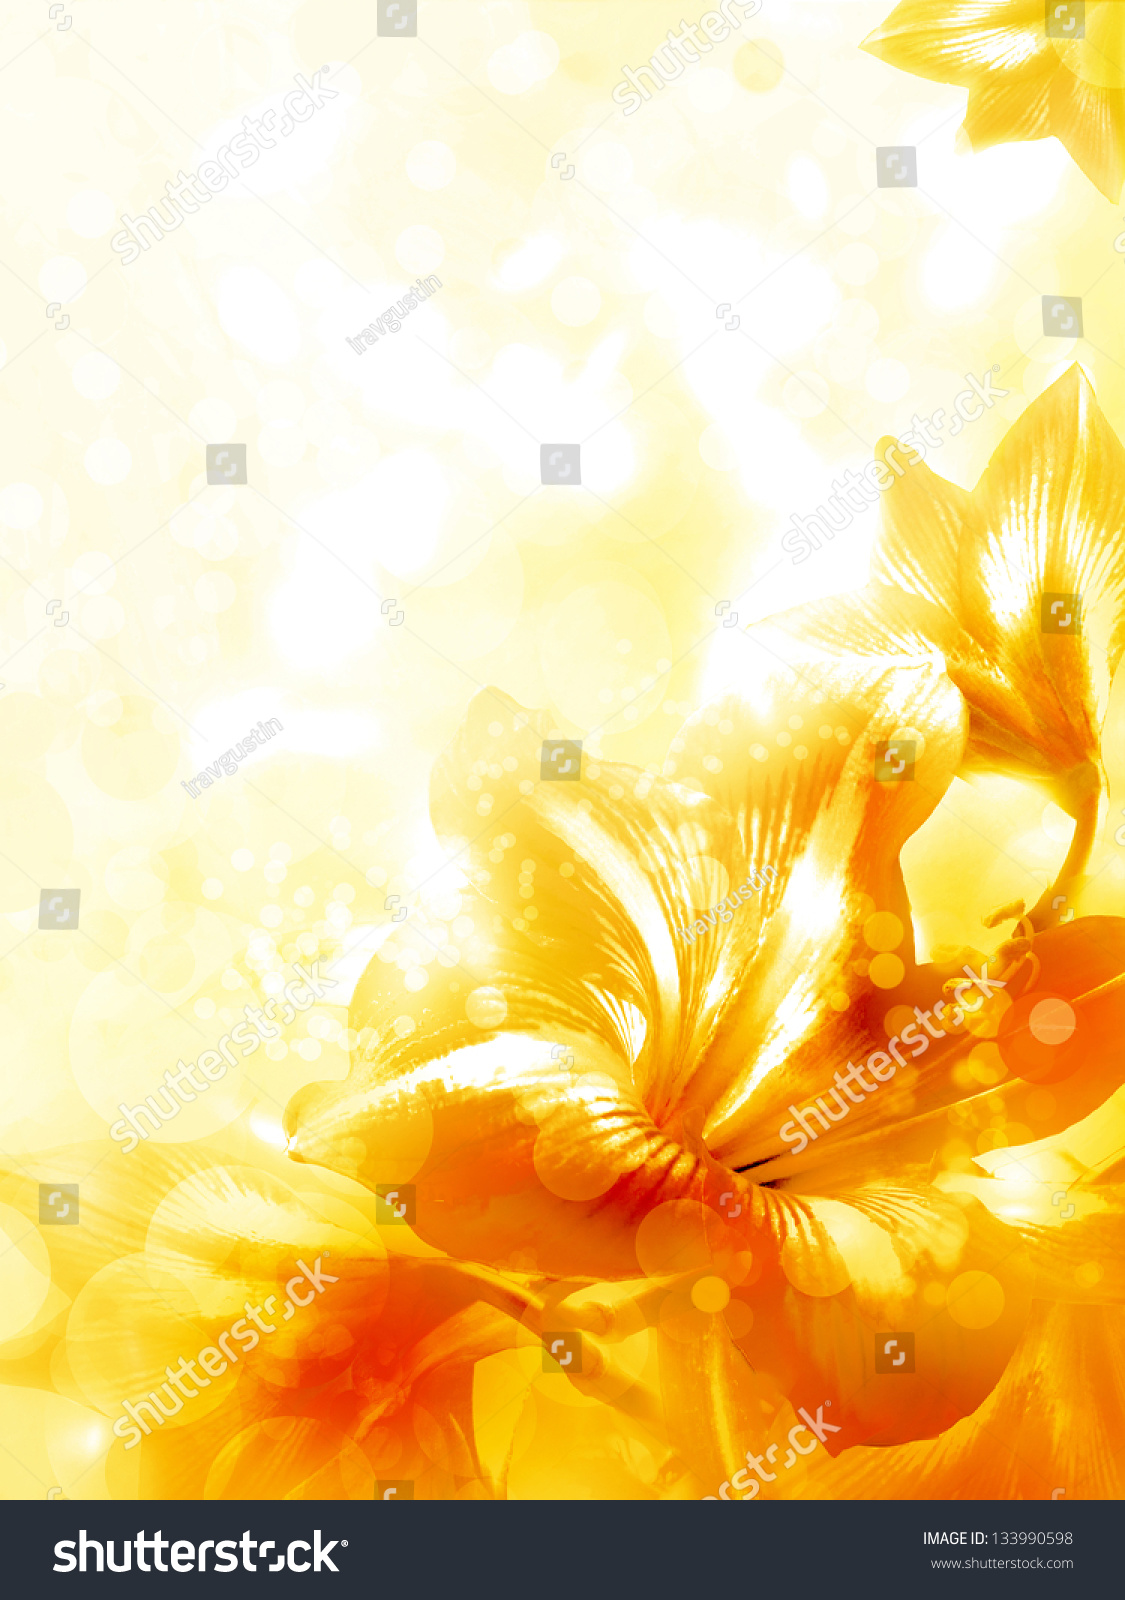 Abstract yellow flower card beautiful flower stock photo edit now abstract yellow flower card beautiful flower background spring background izmirmasajfo